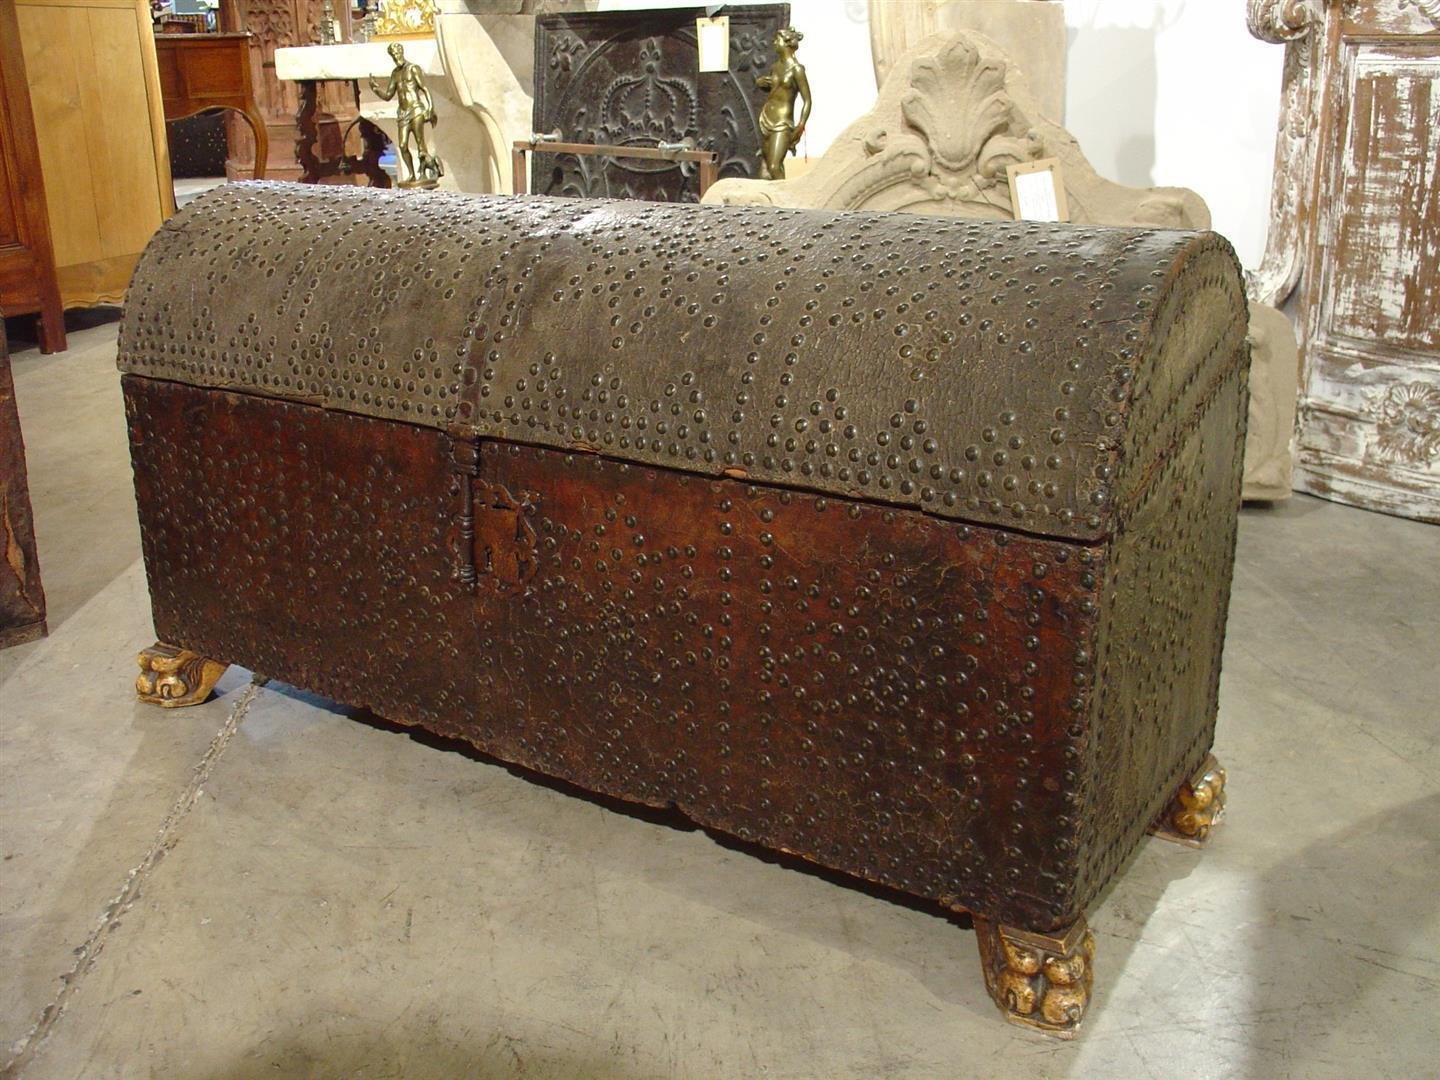 17th Century Rounded Top Leather Trunk from Spain